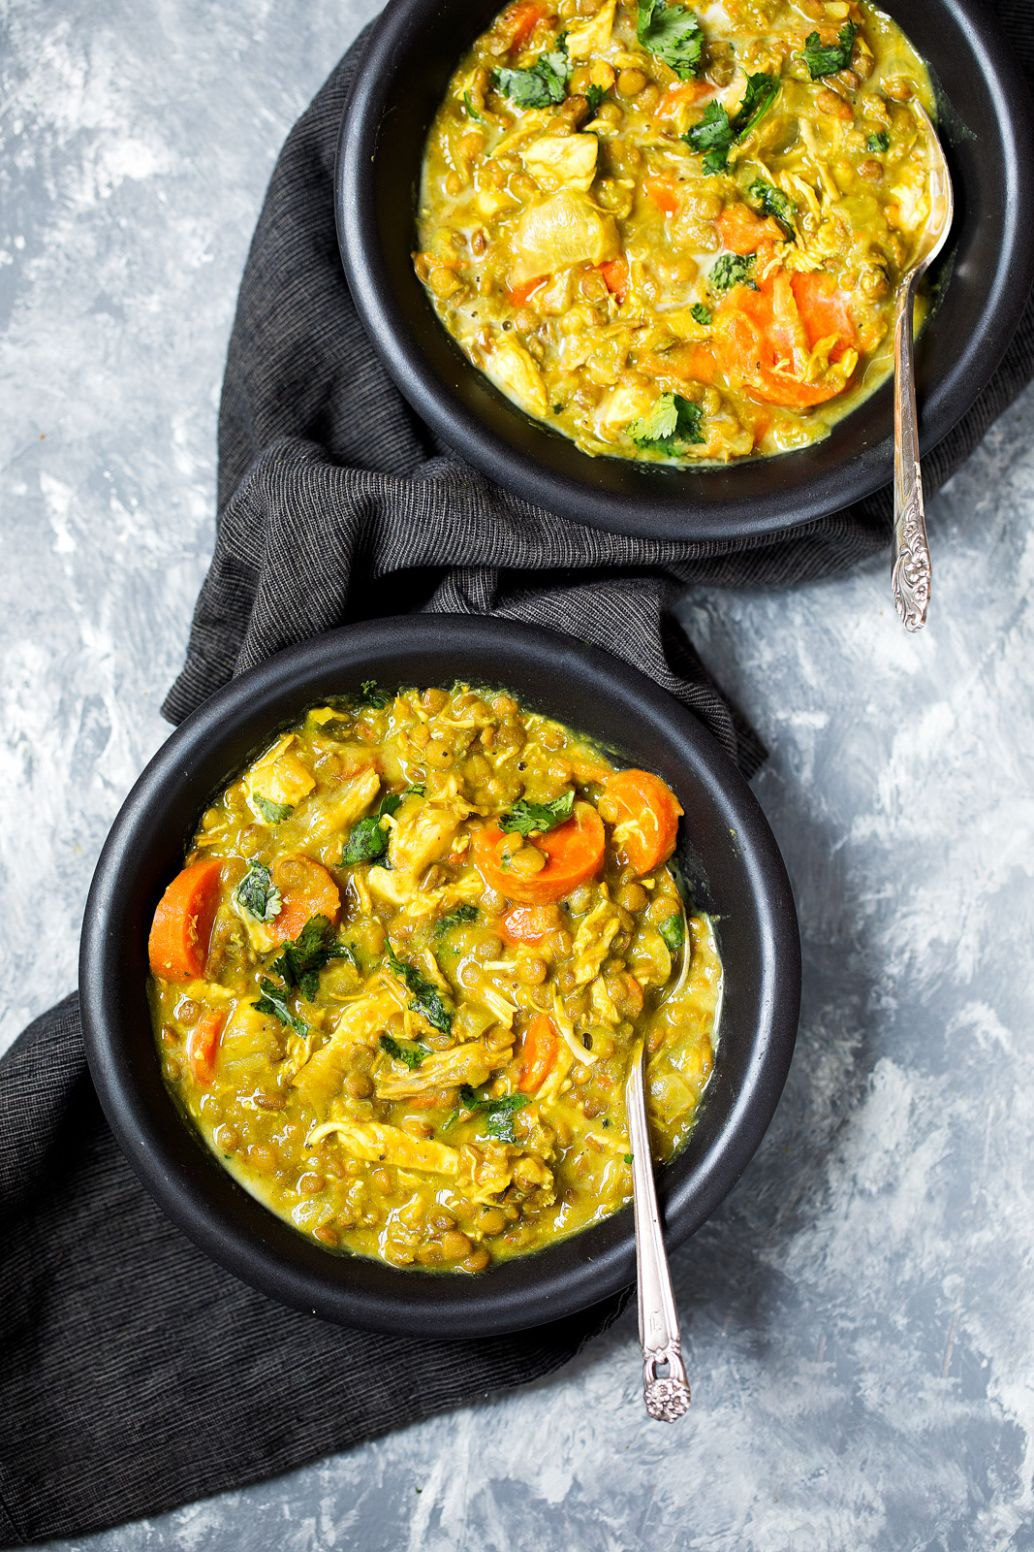 12 Healthy Lentil Recipes Even Meat-Eaters Will Love | Ambitious ..